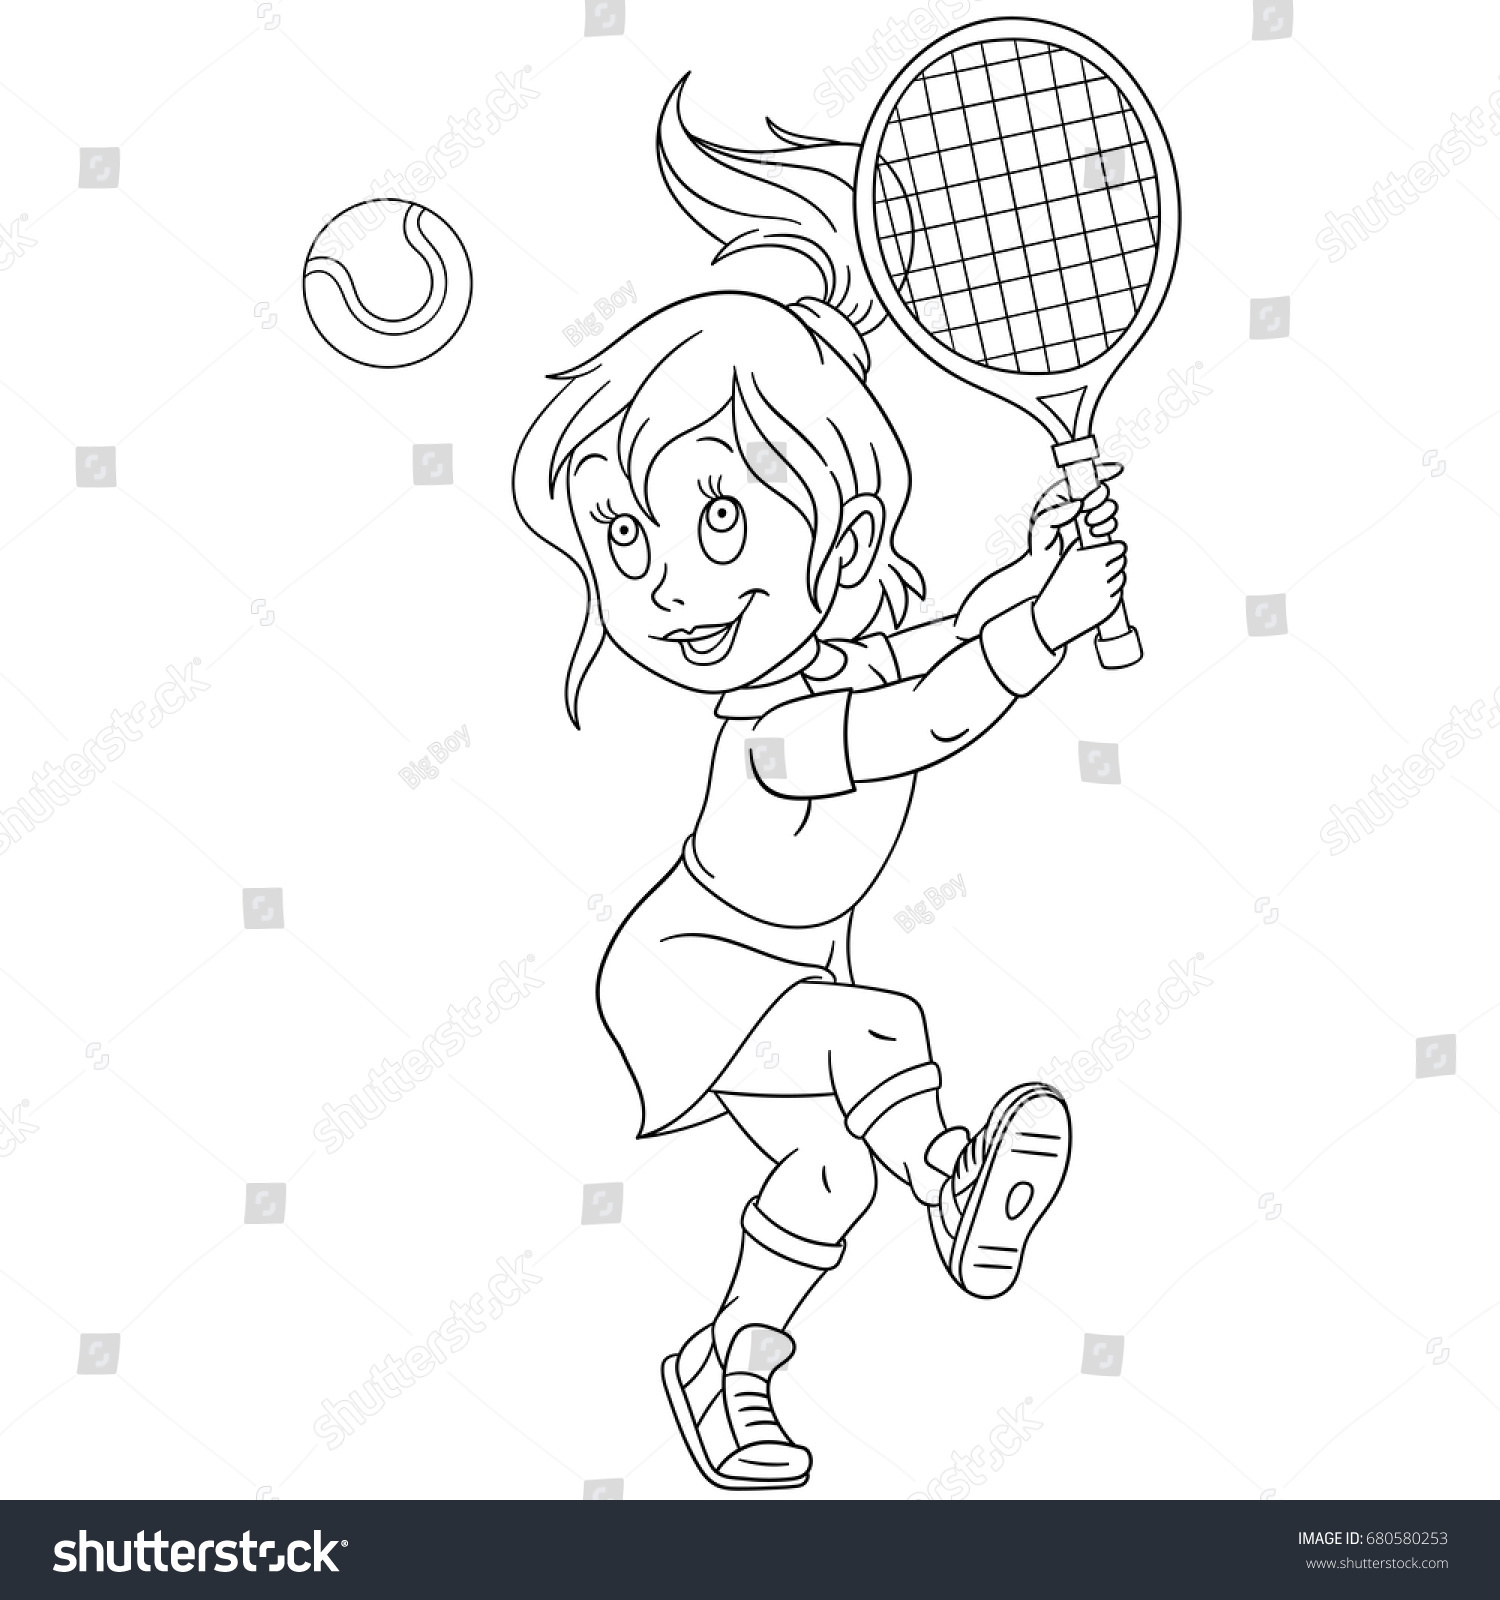 coloring page playing tennis colouring stock vector 680580253